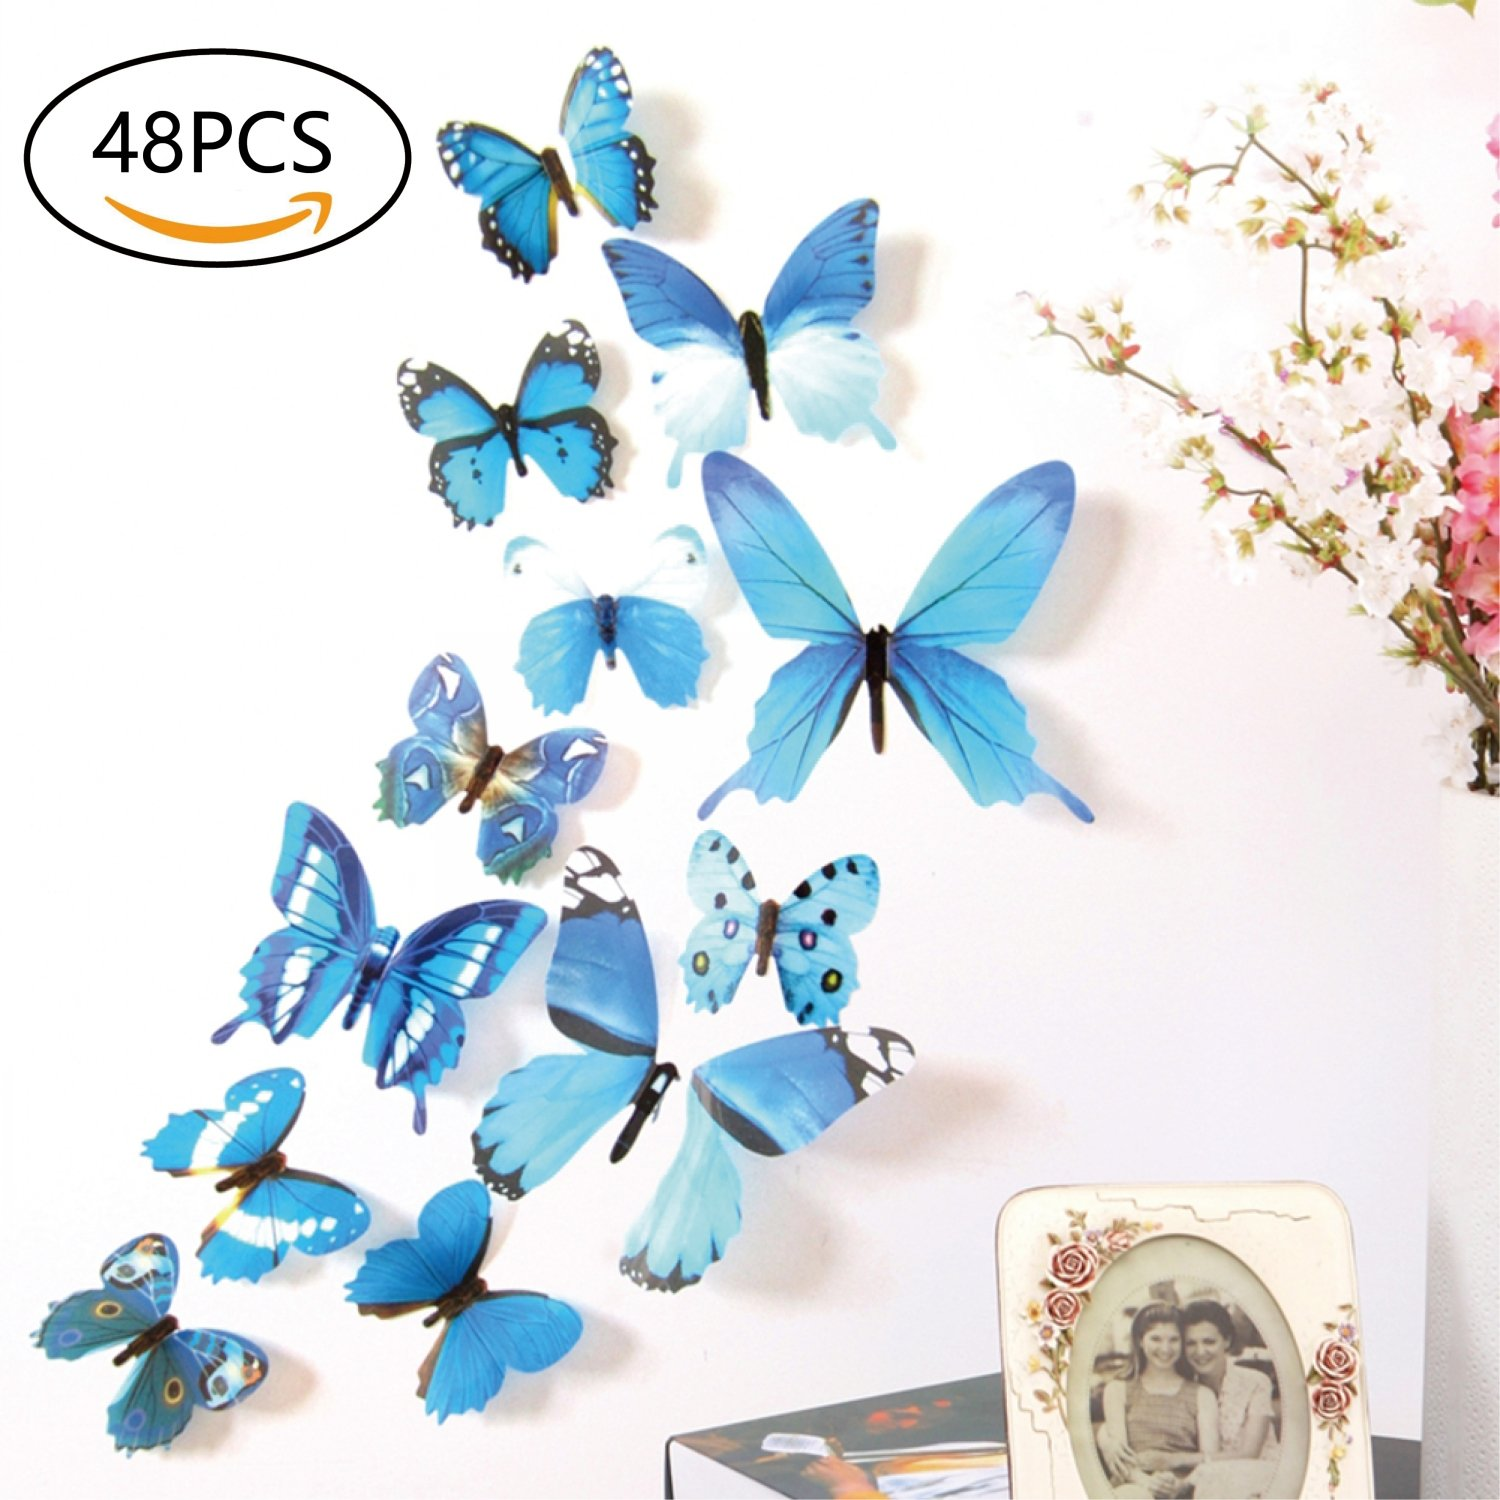 Amazon.com: FIXBODY 3D Butterfly Wall Stickers Decals - 48 PCS 3D ...